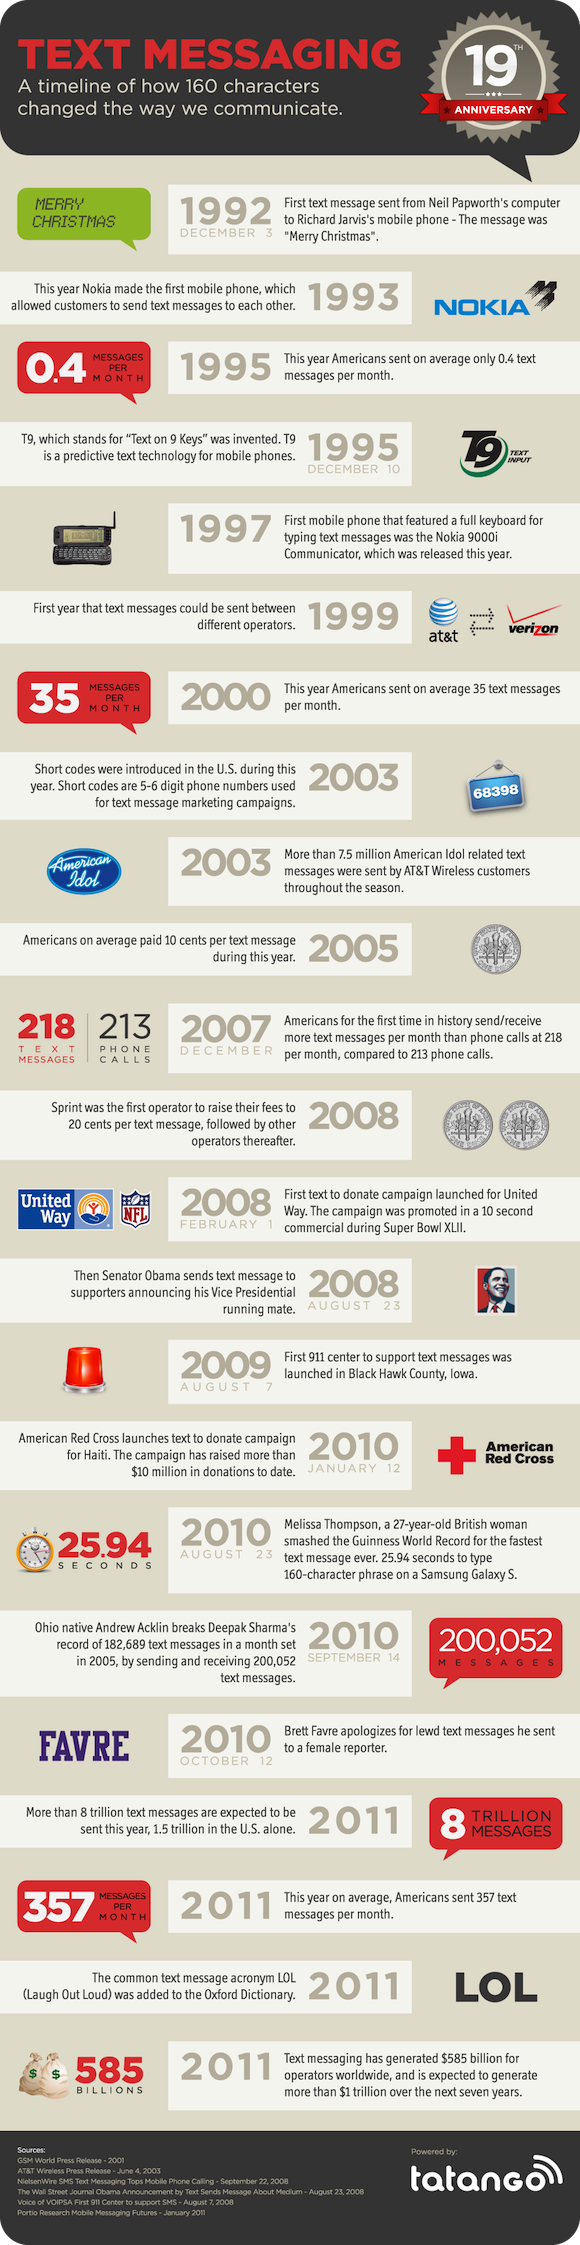 History of Text Messaging Timeline